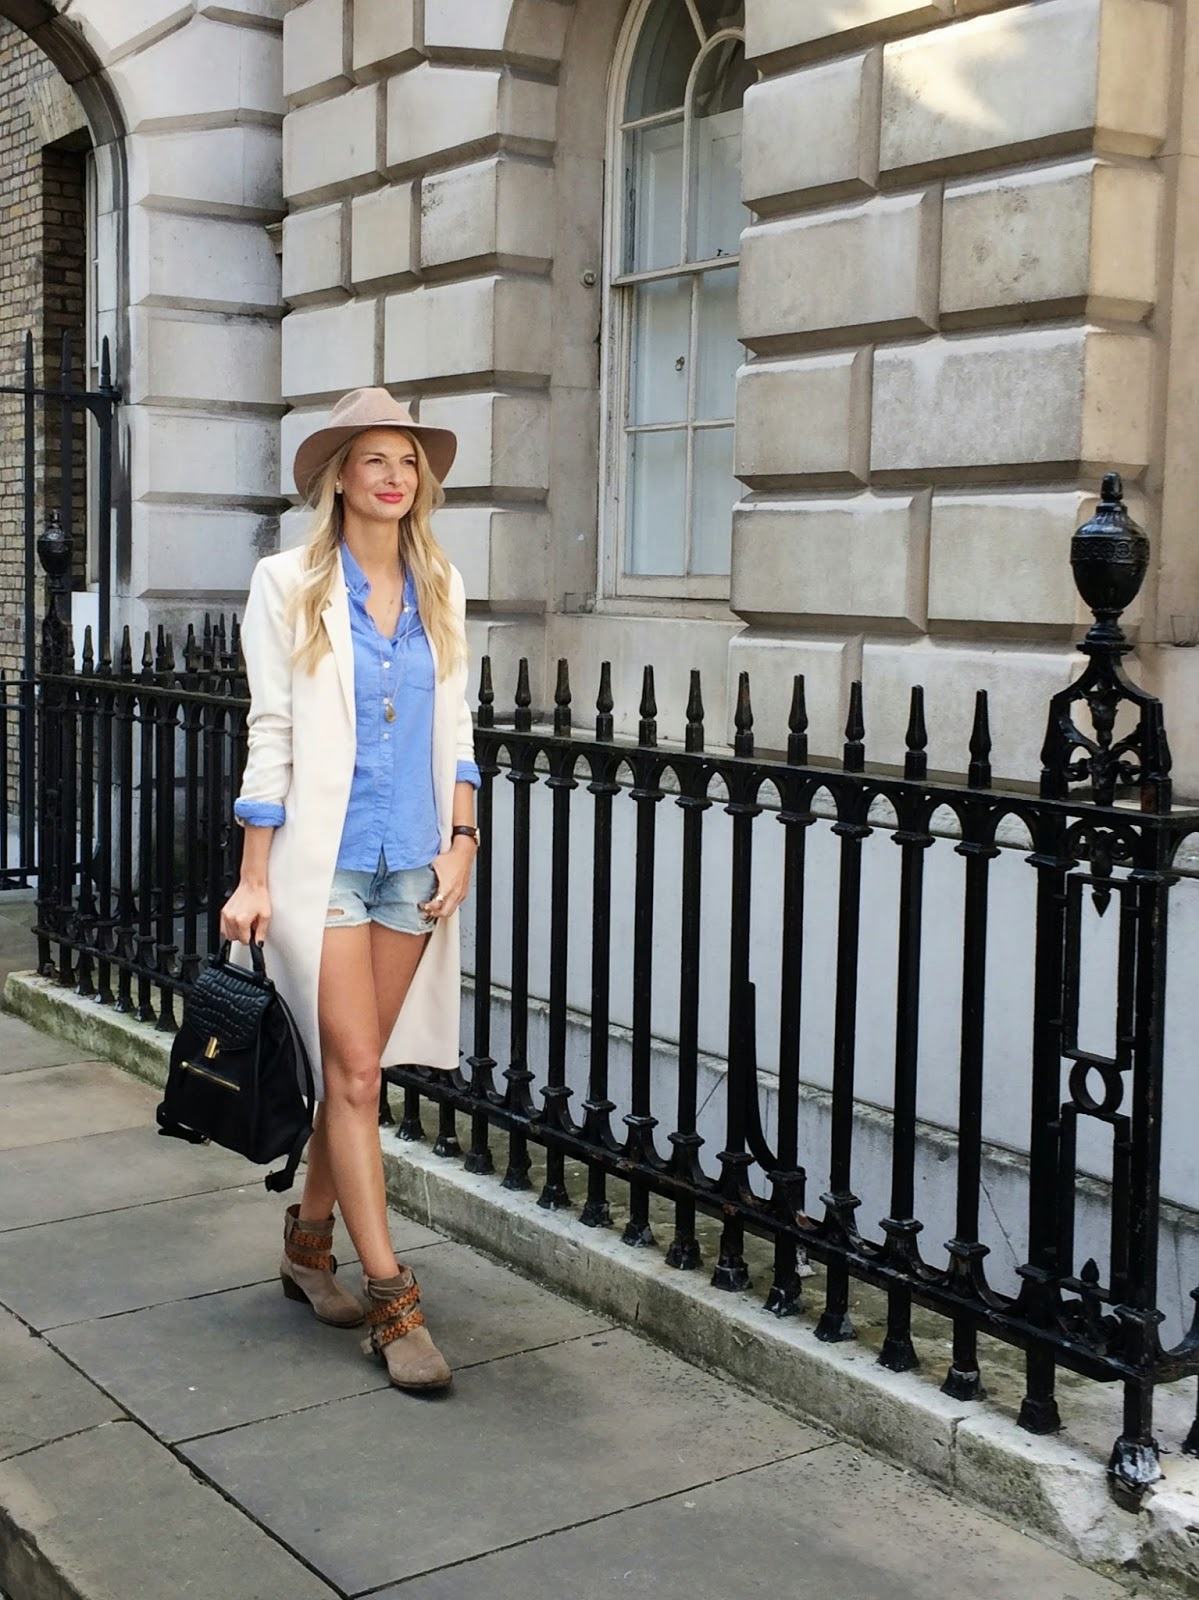 LFW day 1, felder felder, chrissabella, gap shirt, jeans cut off, jeans shorts, zara shorts, duster coat